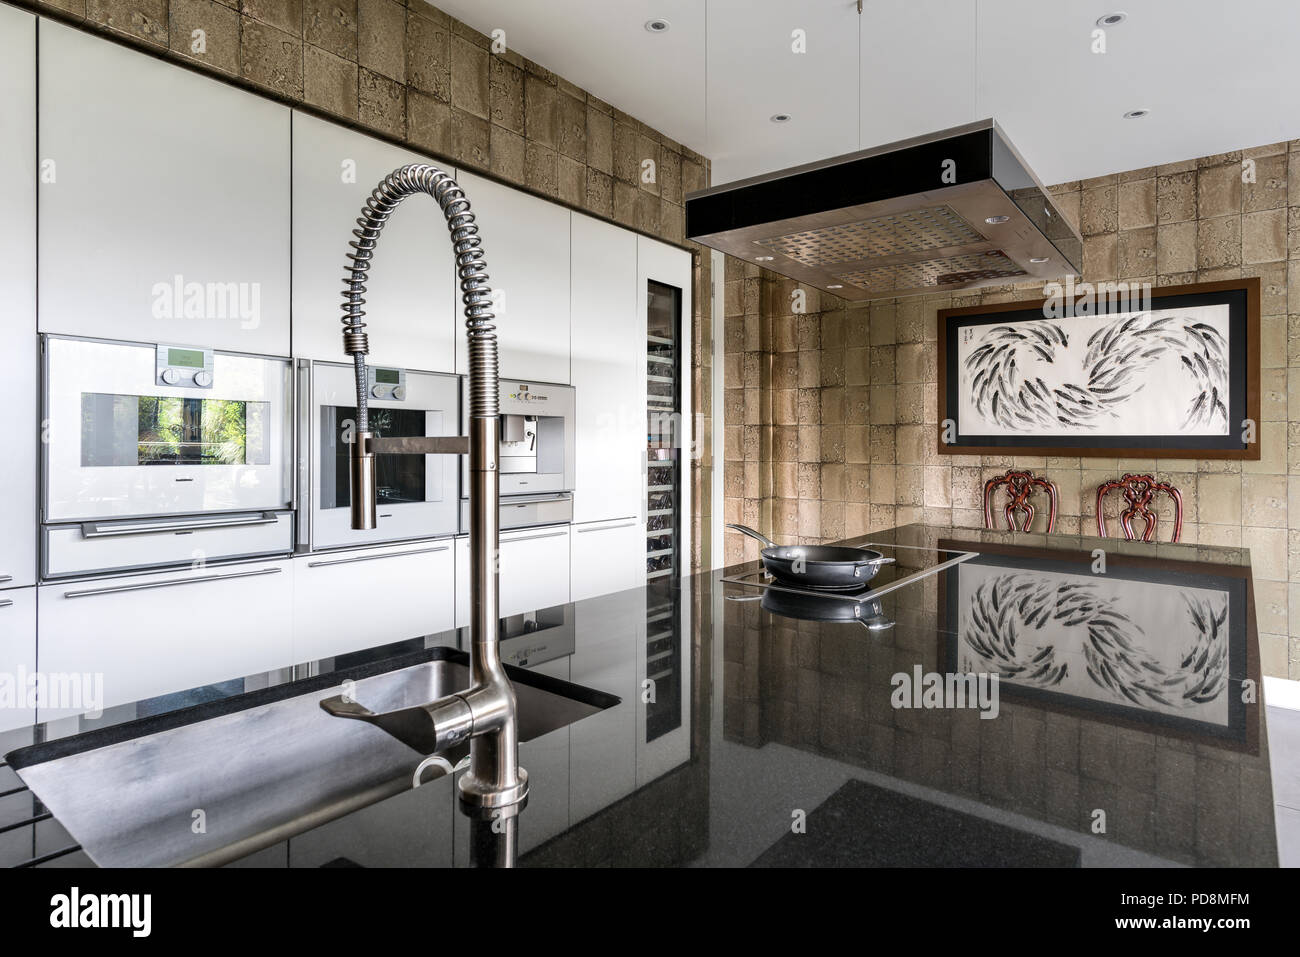 Frying pan on hob with hose tap in sleek London kitchen - Stock Image